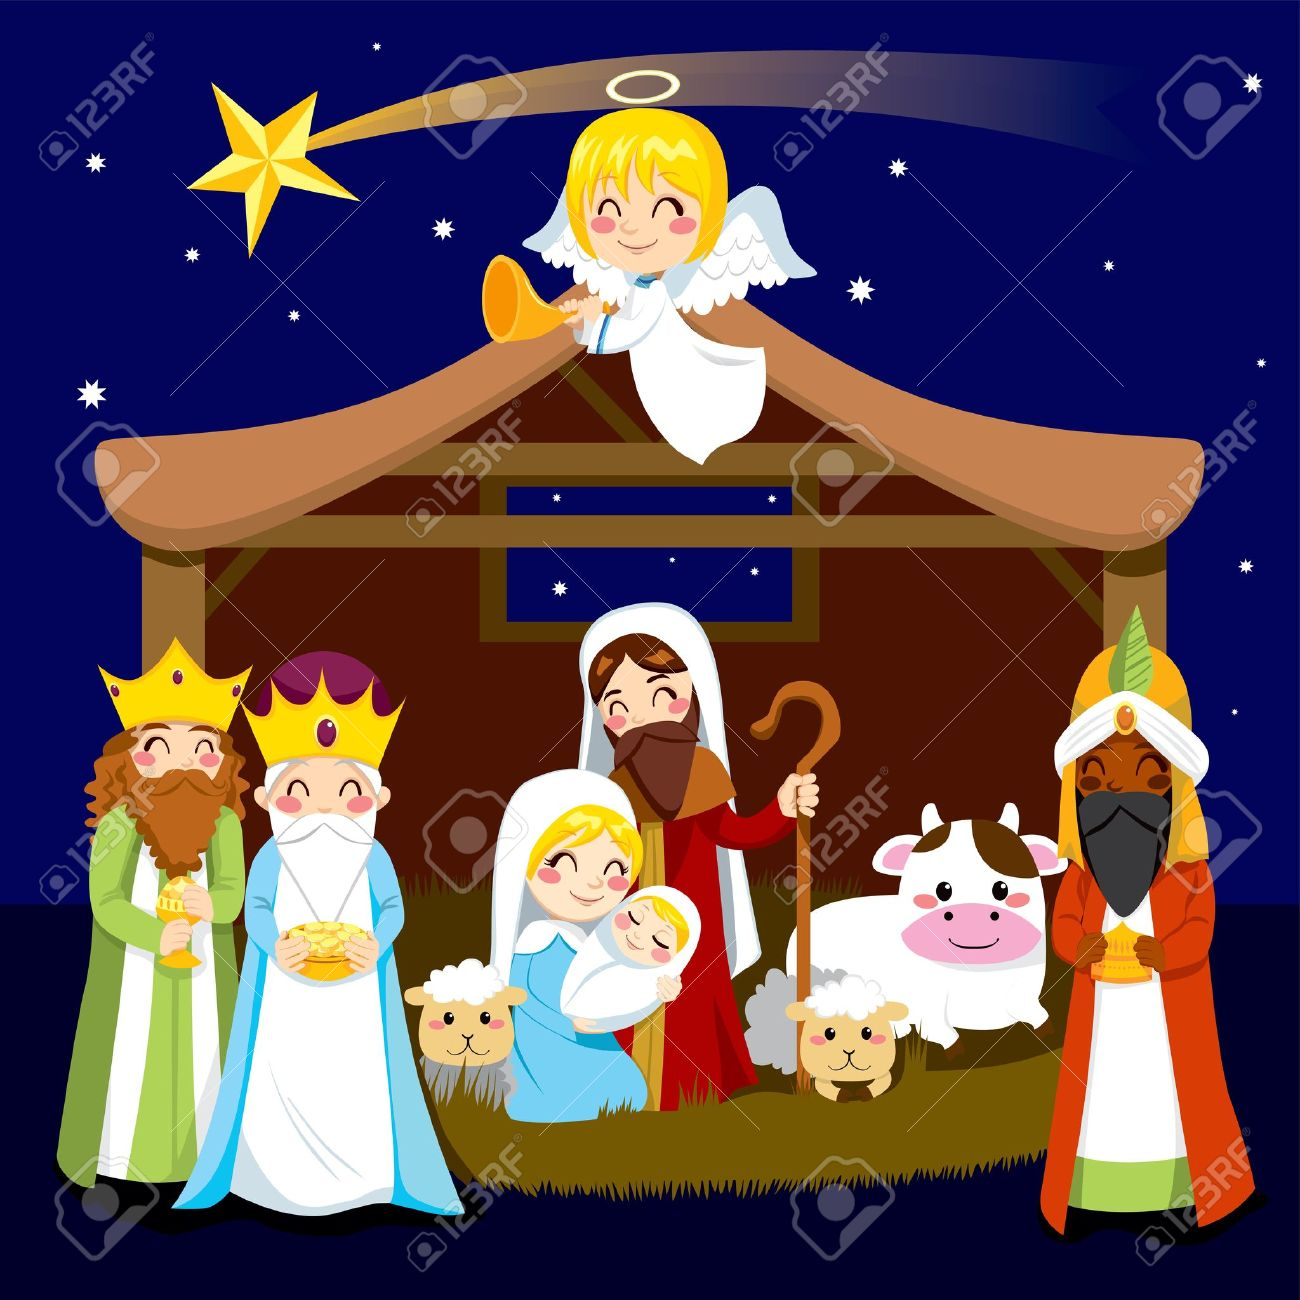 Christmas Nativity.Three Wise Men Bring Presents To Jesus In Christmas Nativity